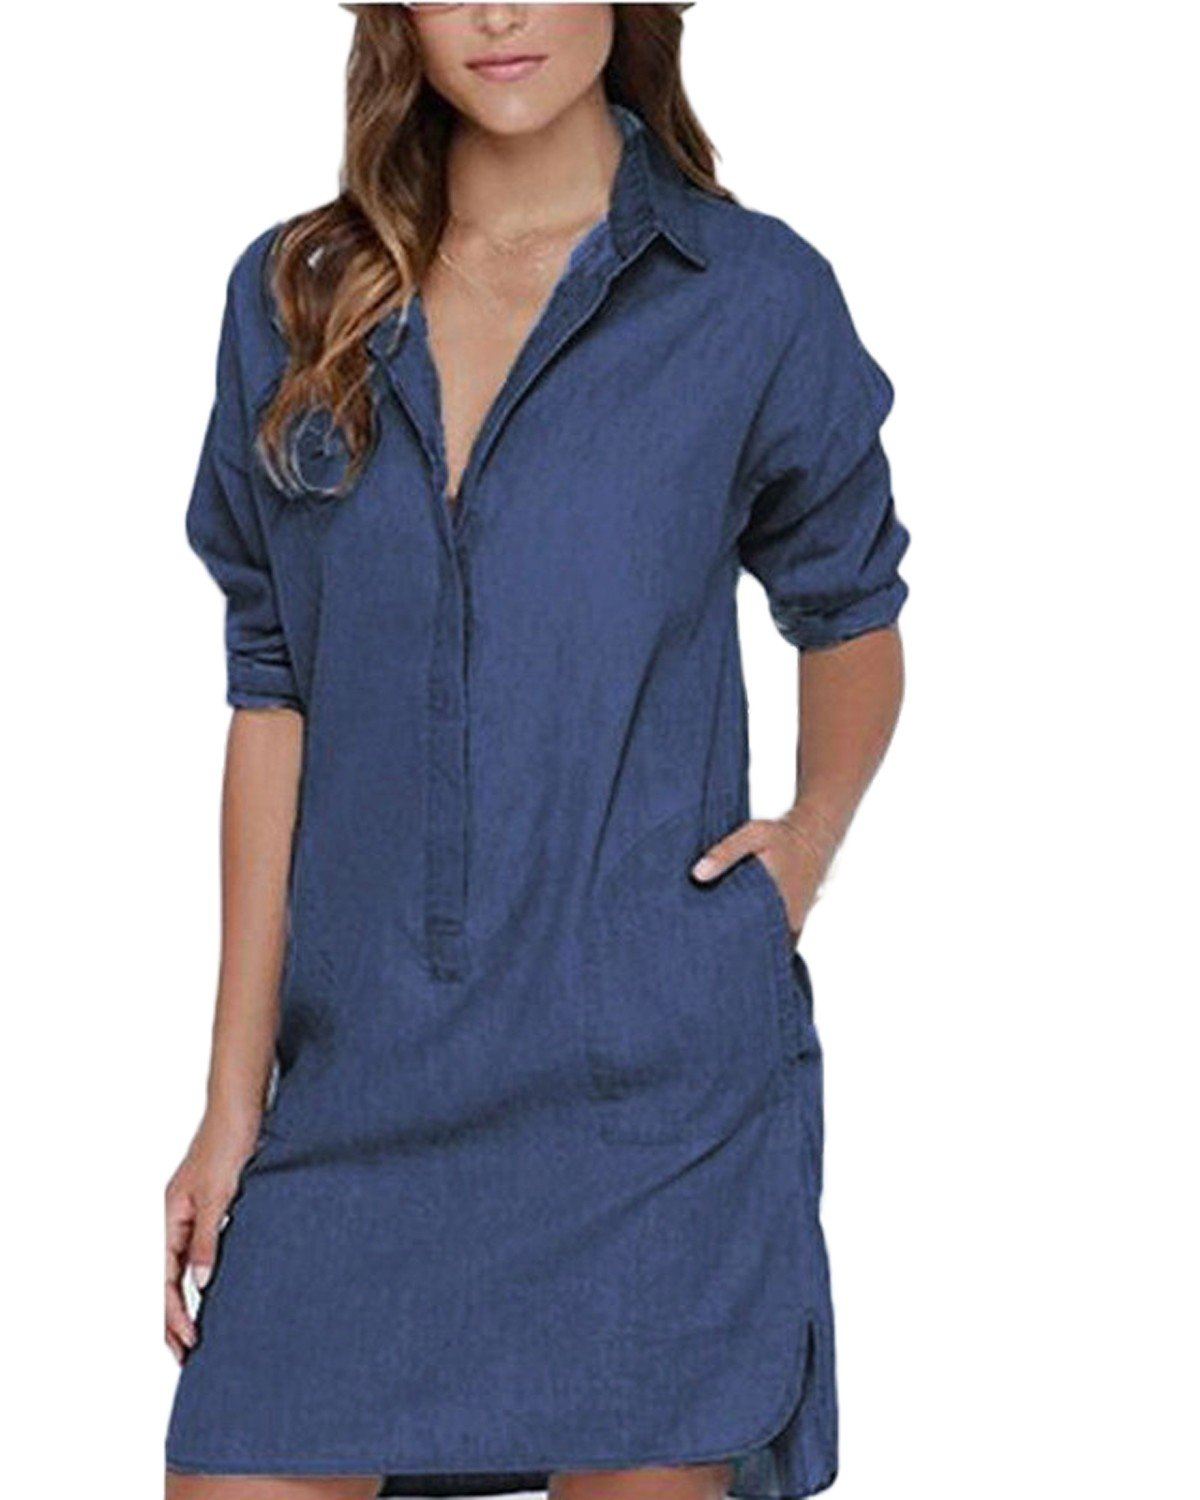 Auxo Women Denim Dress Jean Shirts Button Down Long Sleeve Shift Mini Dress Long Tops Blue 3XL